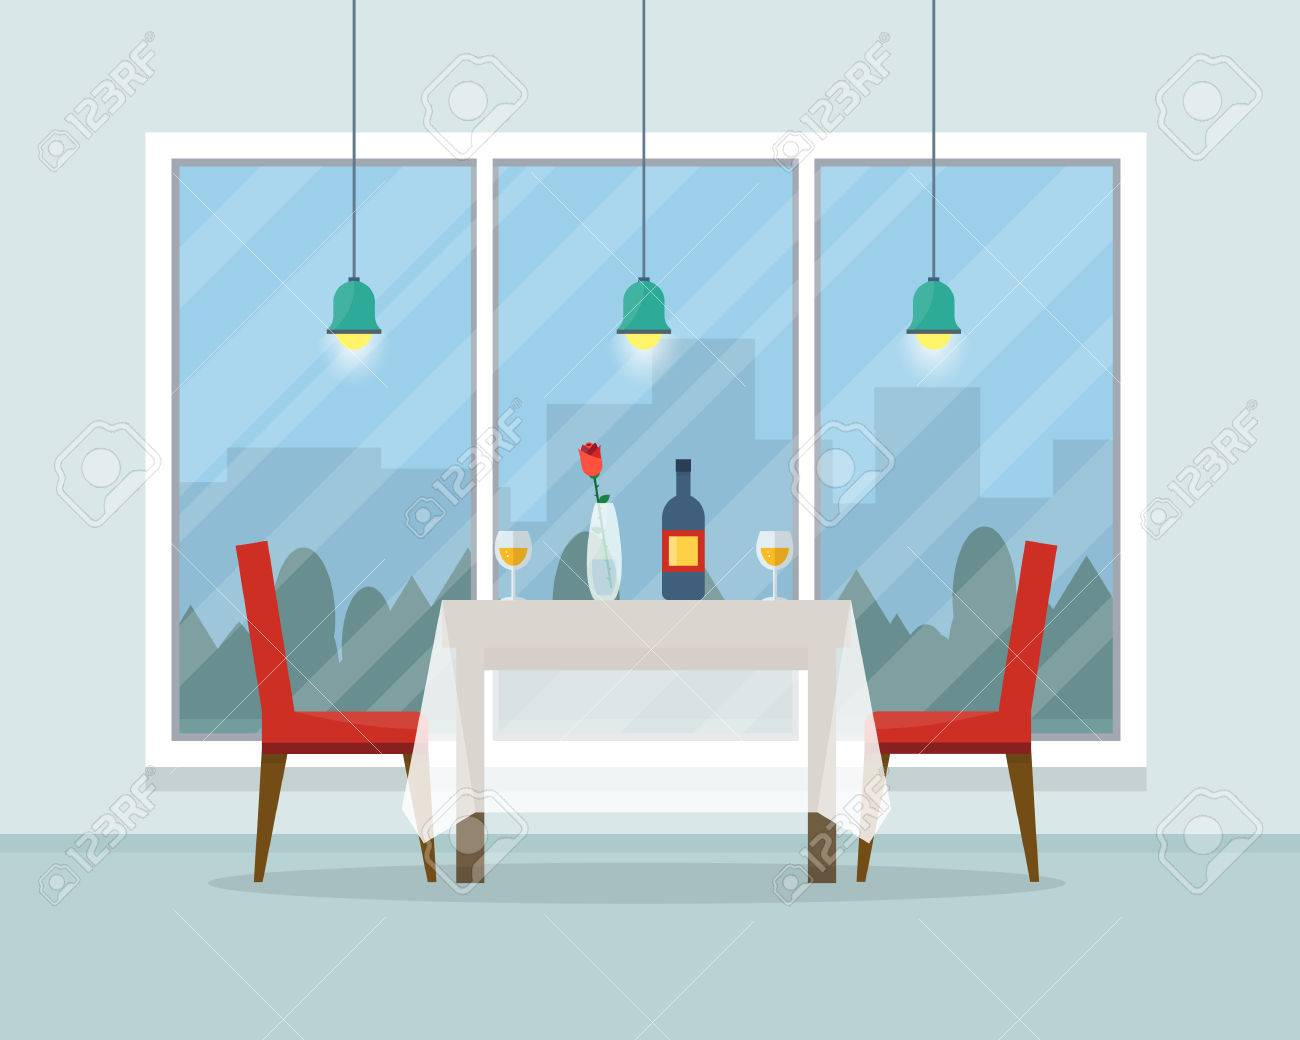 Dining table for date with glasses of wine, flowers and chairs. Flat style vector illustration. - 52617201